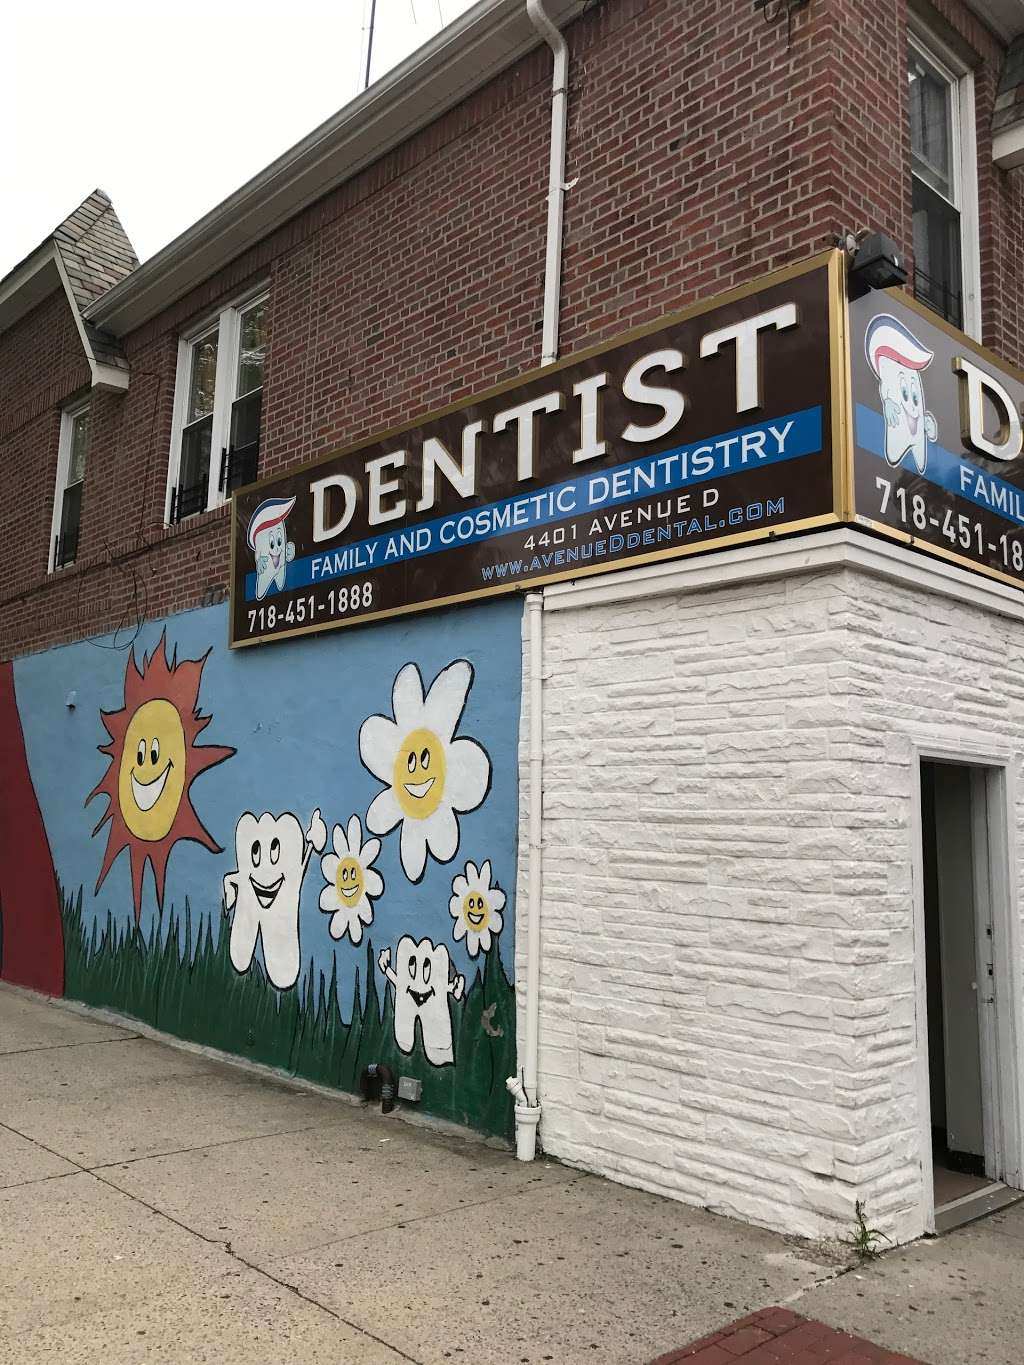 Avenue D Dental: Jamie S. Rosen, DDS - dentist  | Photo 4 of 6 | Address: 4401 Avenue D, Brooklyn, NY 11203, USA | Phone: (718) 451-1888